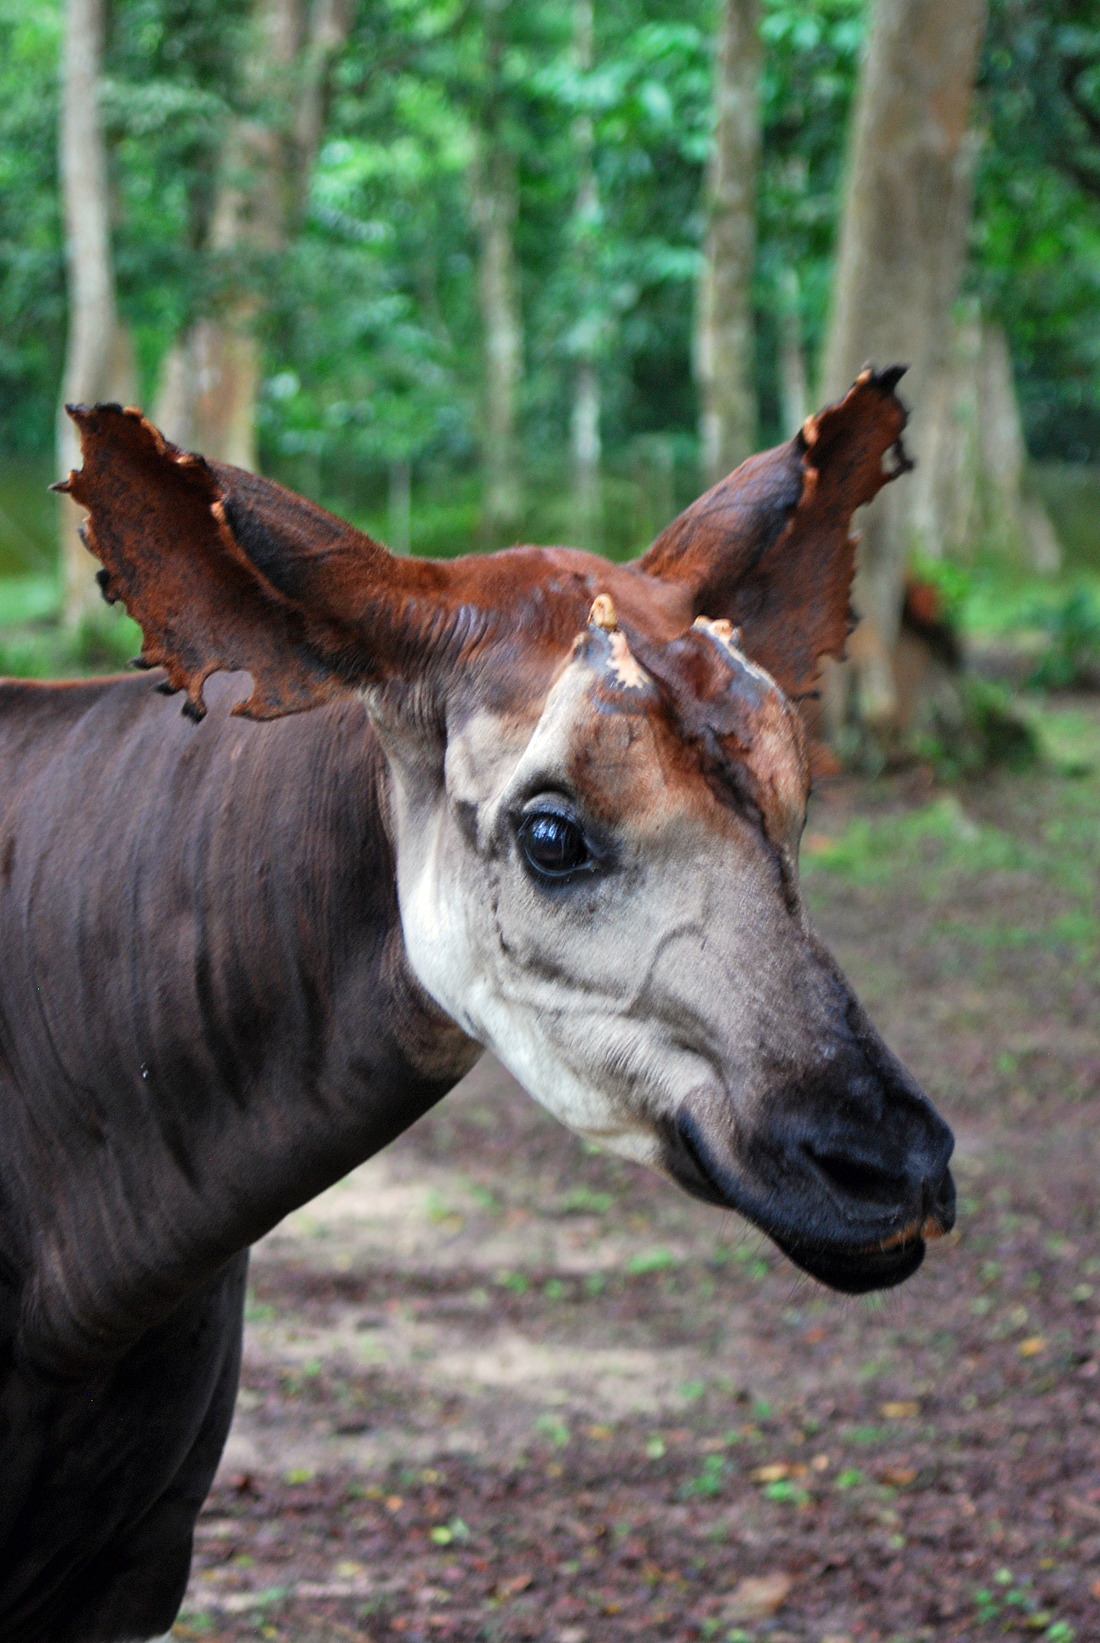 The Okapi (Okapia johnstoni; pronounced /o??k??p?/) is a giraffid artiodactyl mammal native to the Ituri Rainforest, located in the northeast of the Democratic Republic of the Congo, in central Africa. Although the okapi bears striped markings reminiscent of the zebra, it is most closely related to the giraffe. Unknown to Europeans until 1901, today there are approximately 10,000–20,000 in the wild and only 40 different worldwide institutions display them